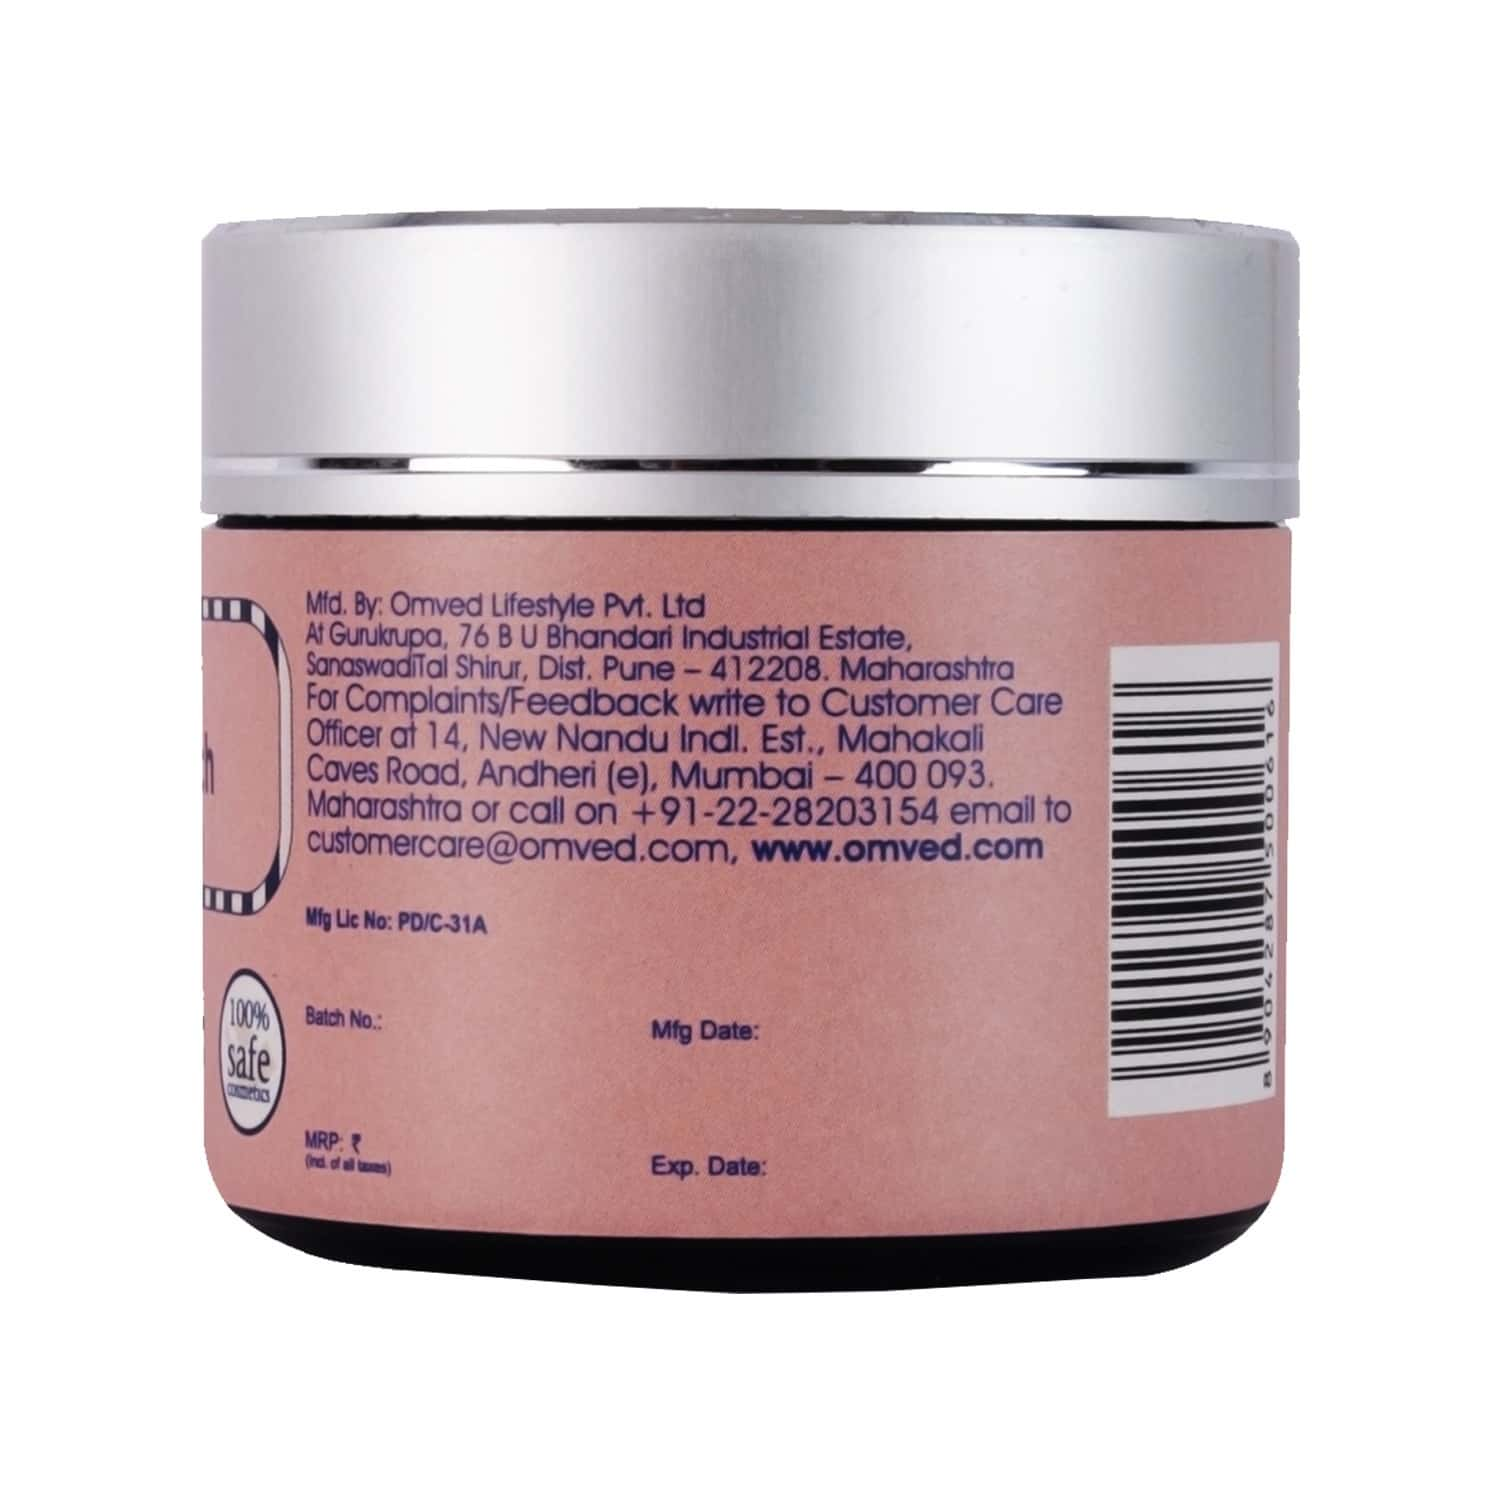 Omved Anti Stretch Belly Balm | Ayurvedic, Natural And Chemical Free Cream For Pregnancy Stretch Marks-40 G